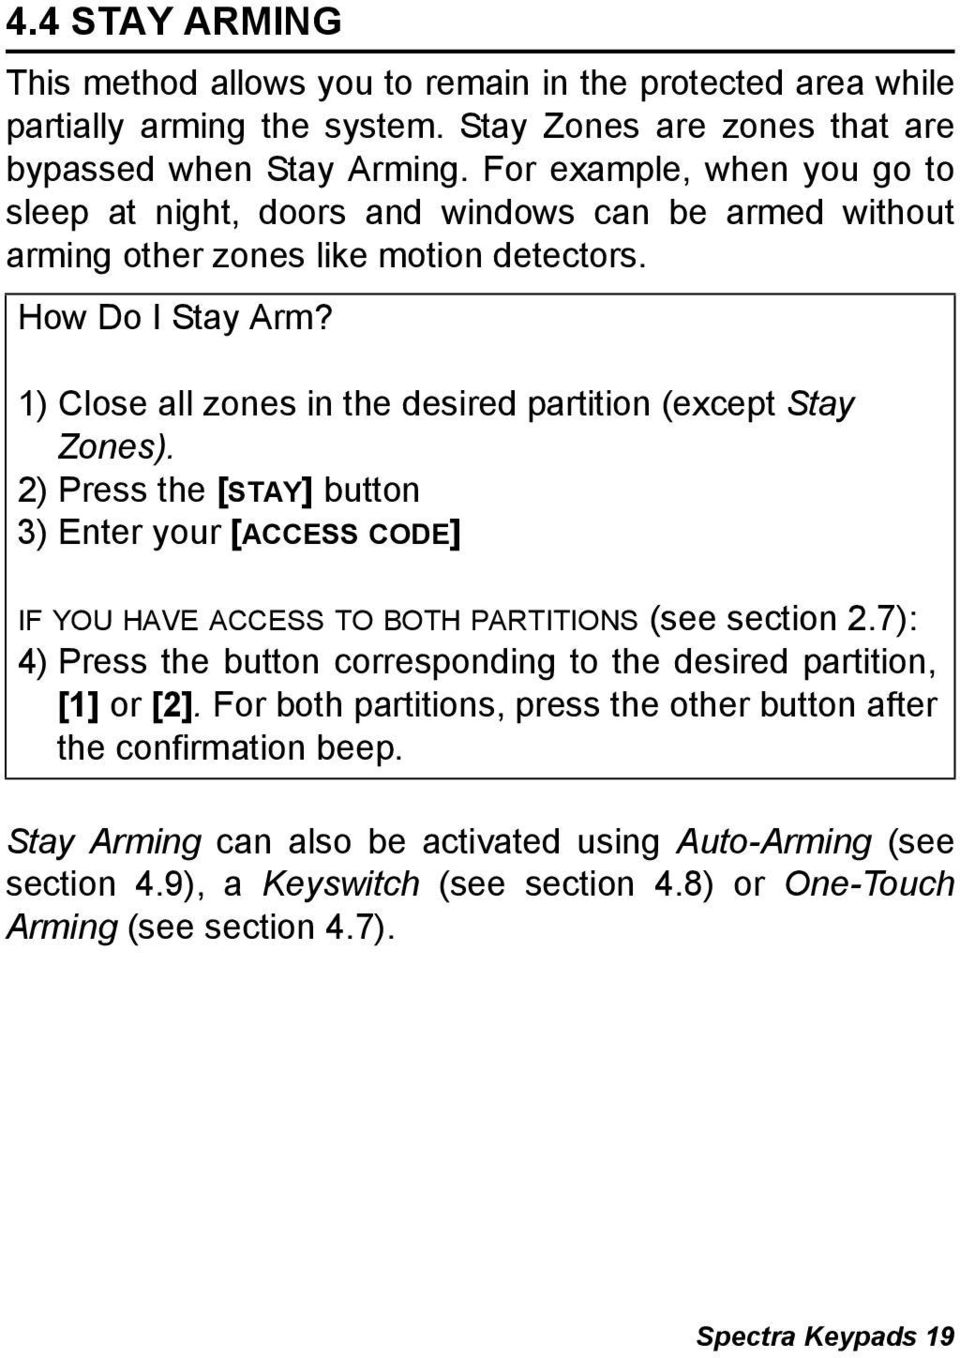 1) Close all zones in the desired partition (except Stay Zones). 2) Press the [STAY] button 3) Enter your [ACCESS CODE] IF YOU HAVE ACCESS TO BOTH PARTITIONS (see section 2.